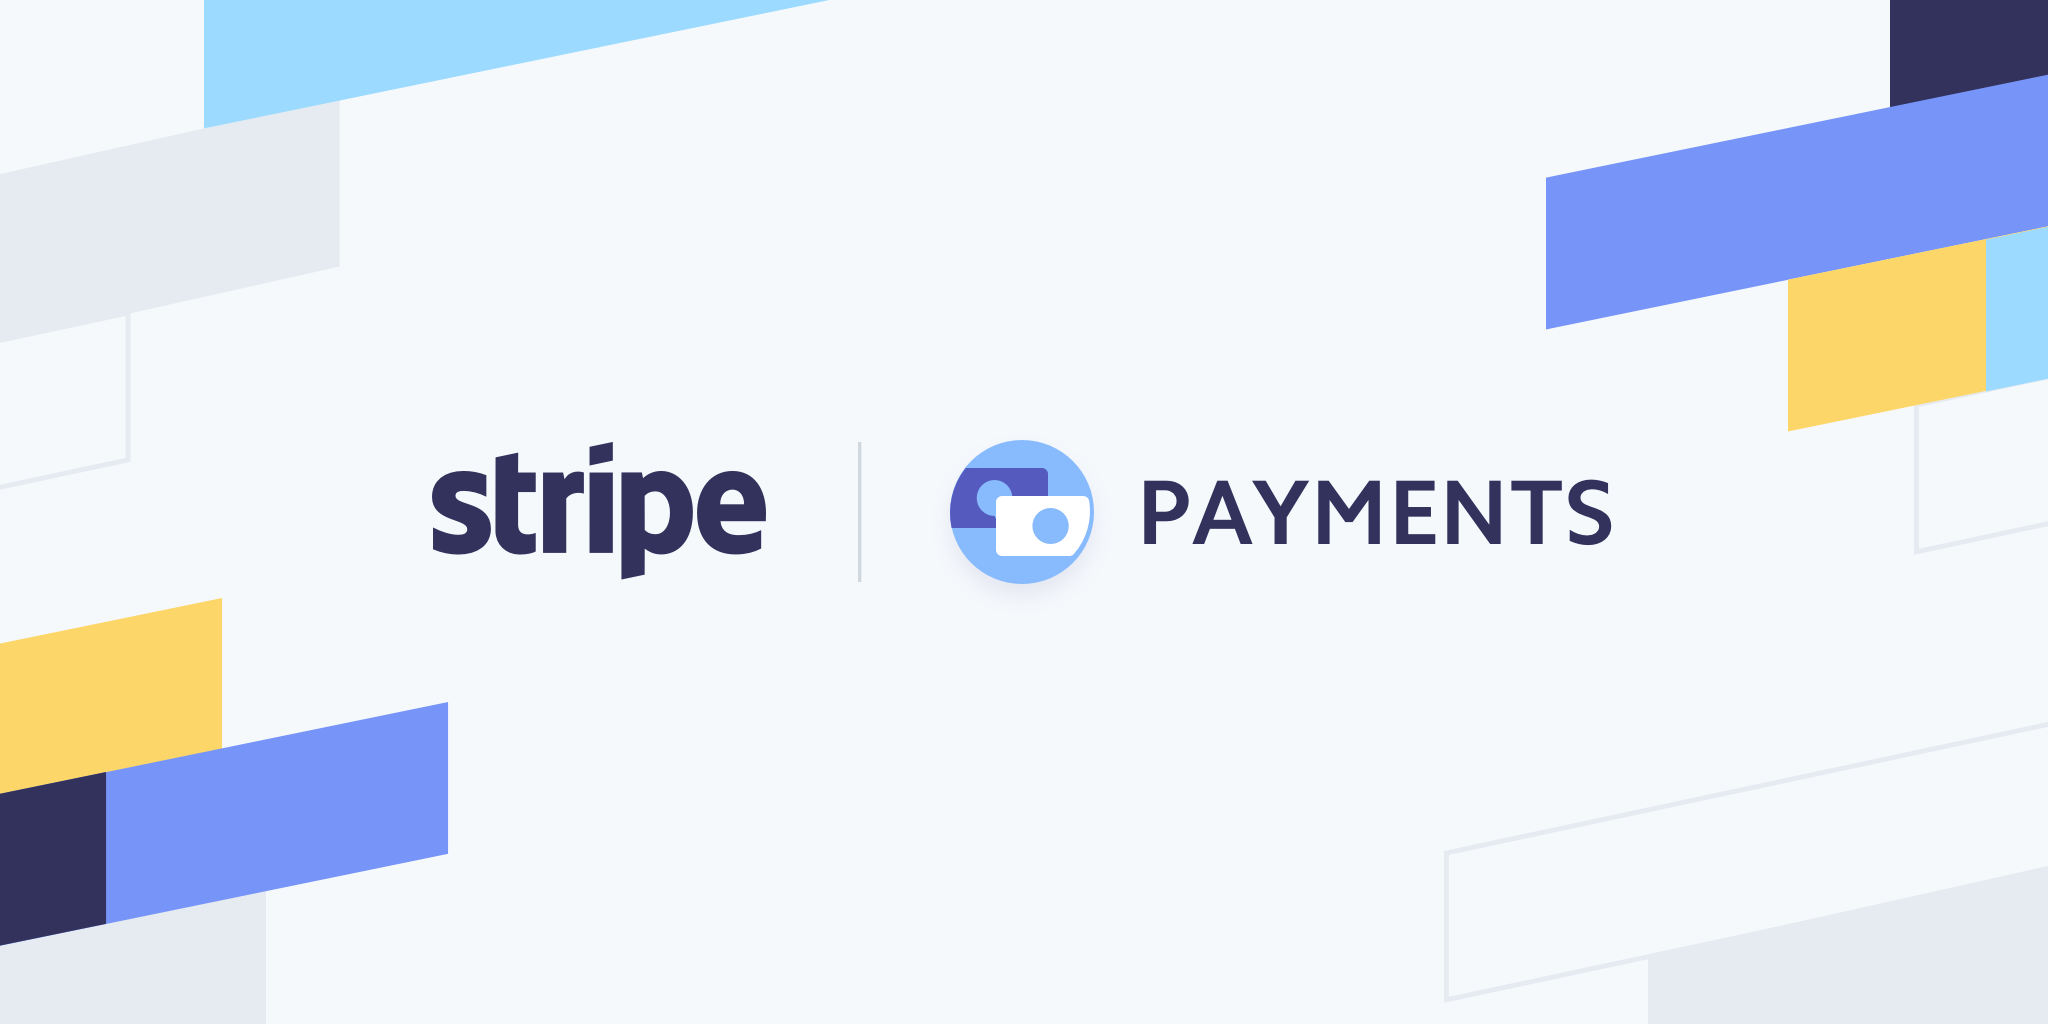 Stripe Payments: A complete payments platform, engineered